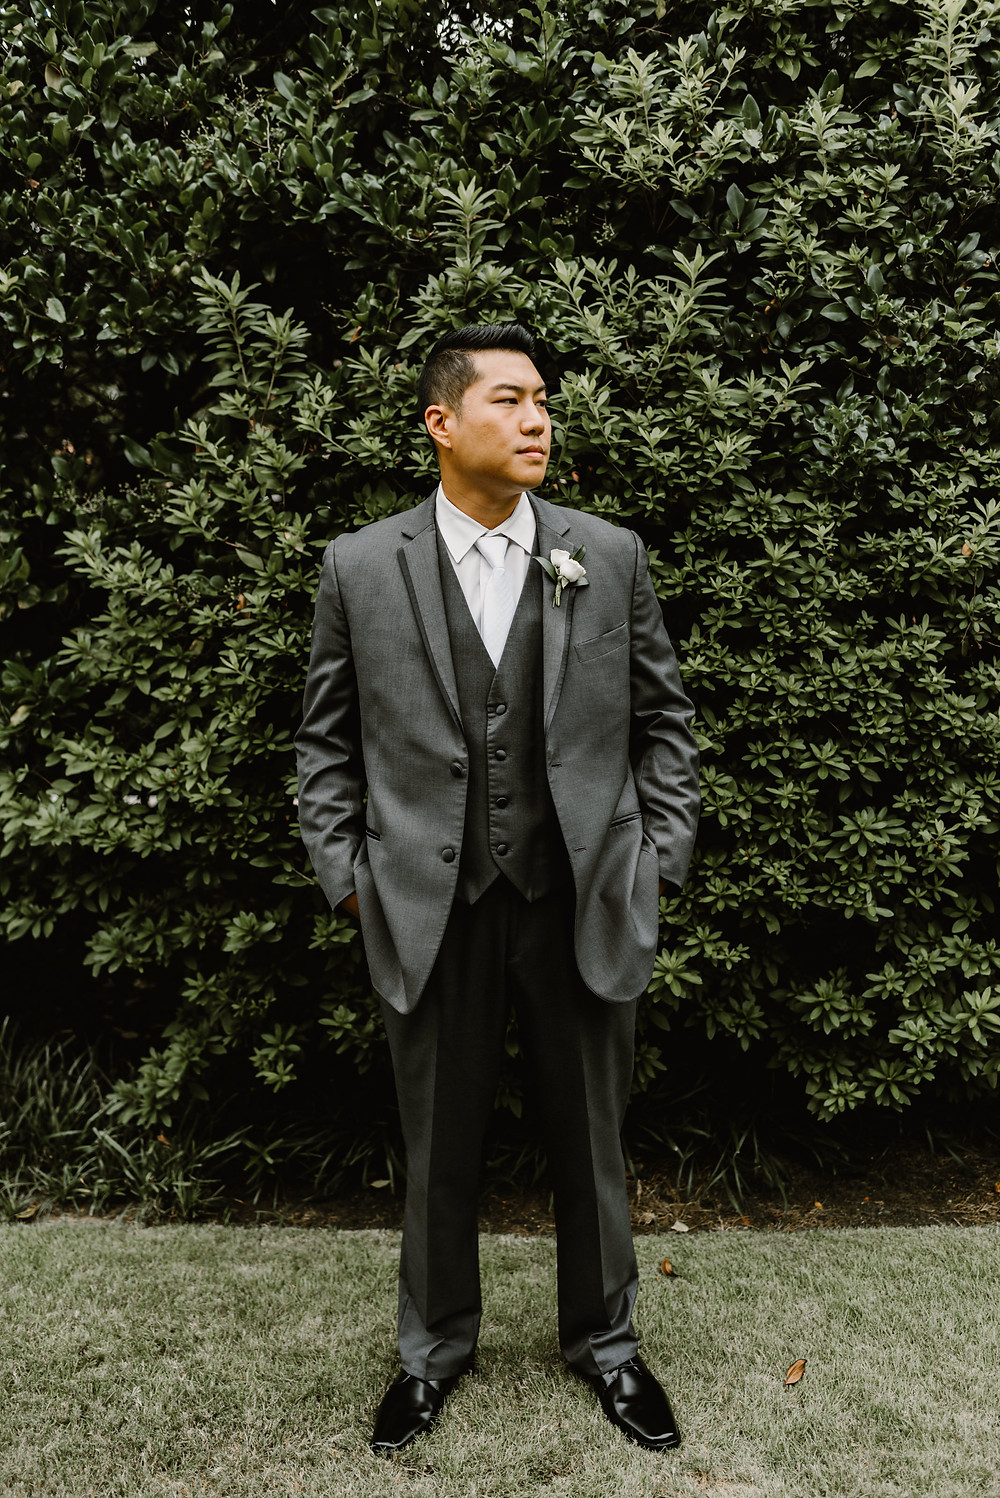 Asian Groom wearing a gray suit